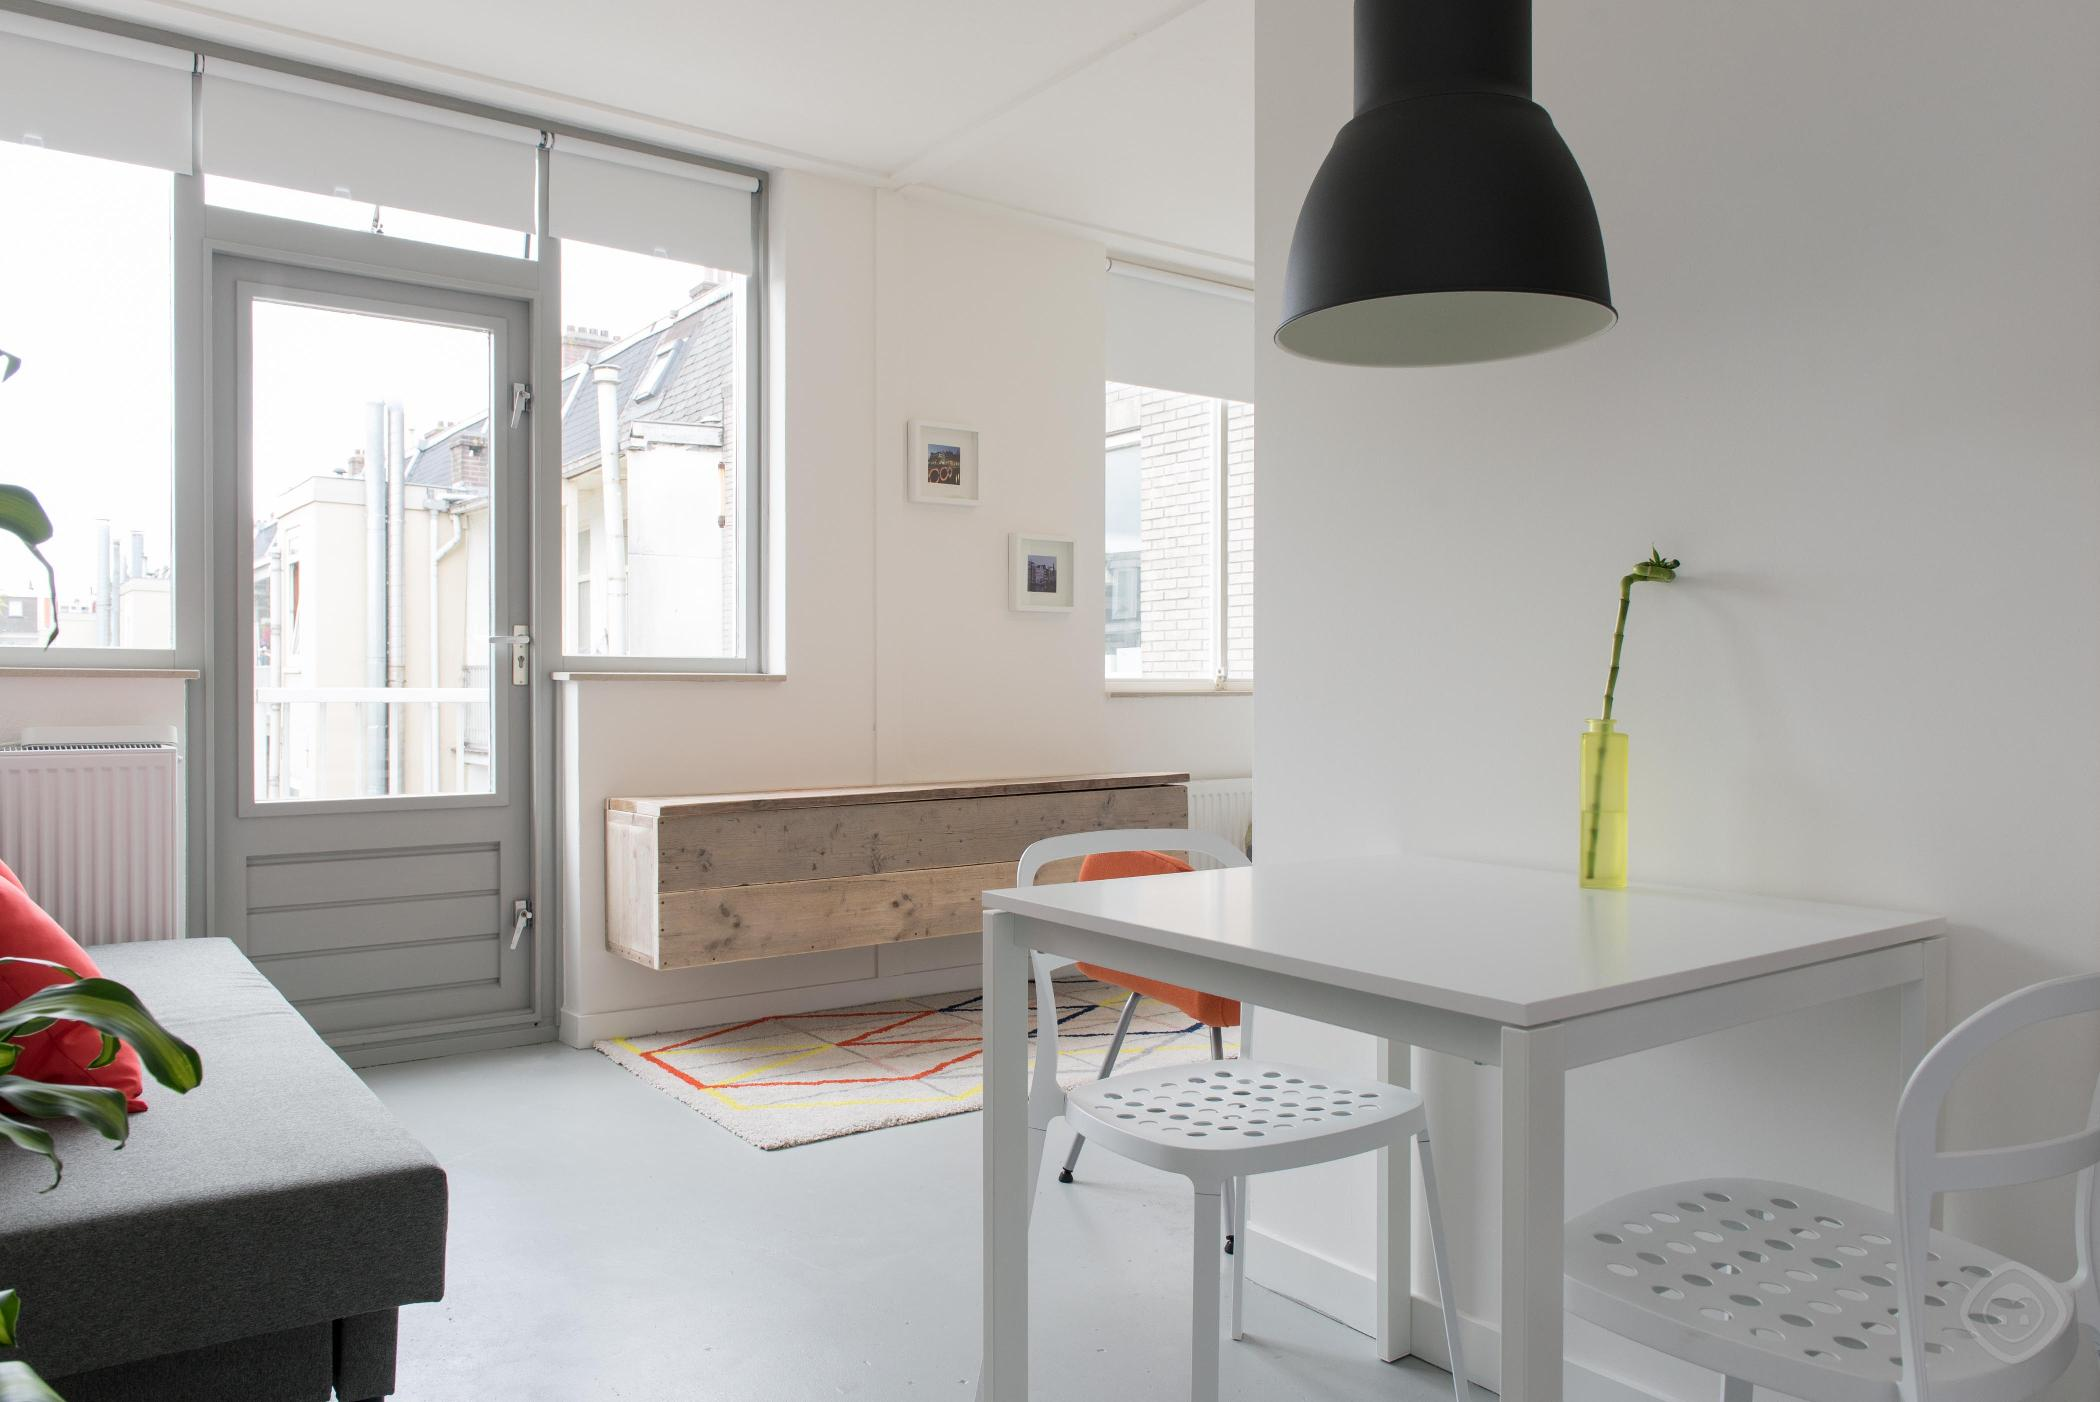 Central West studio Amsterdam photo 31815357